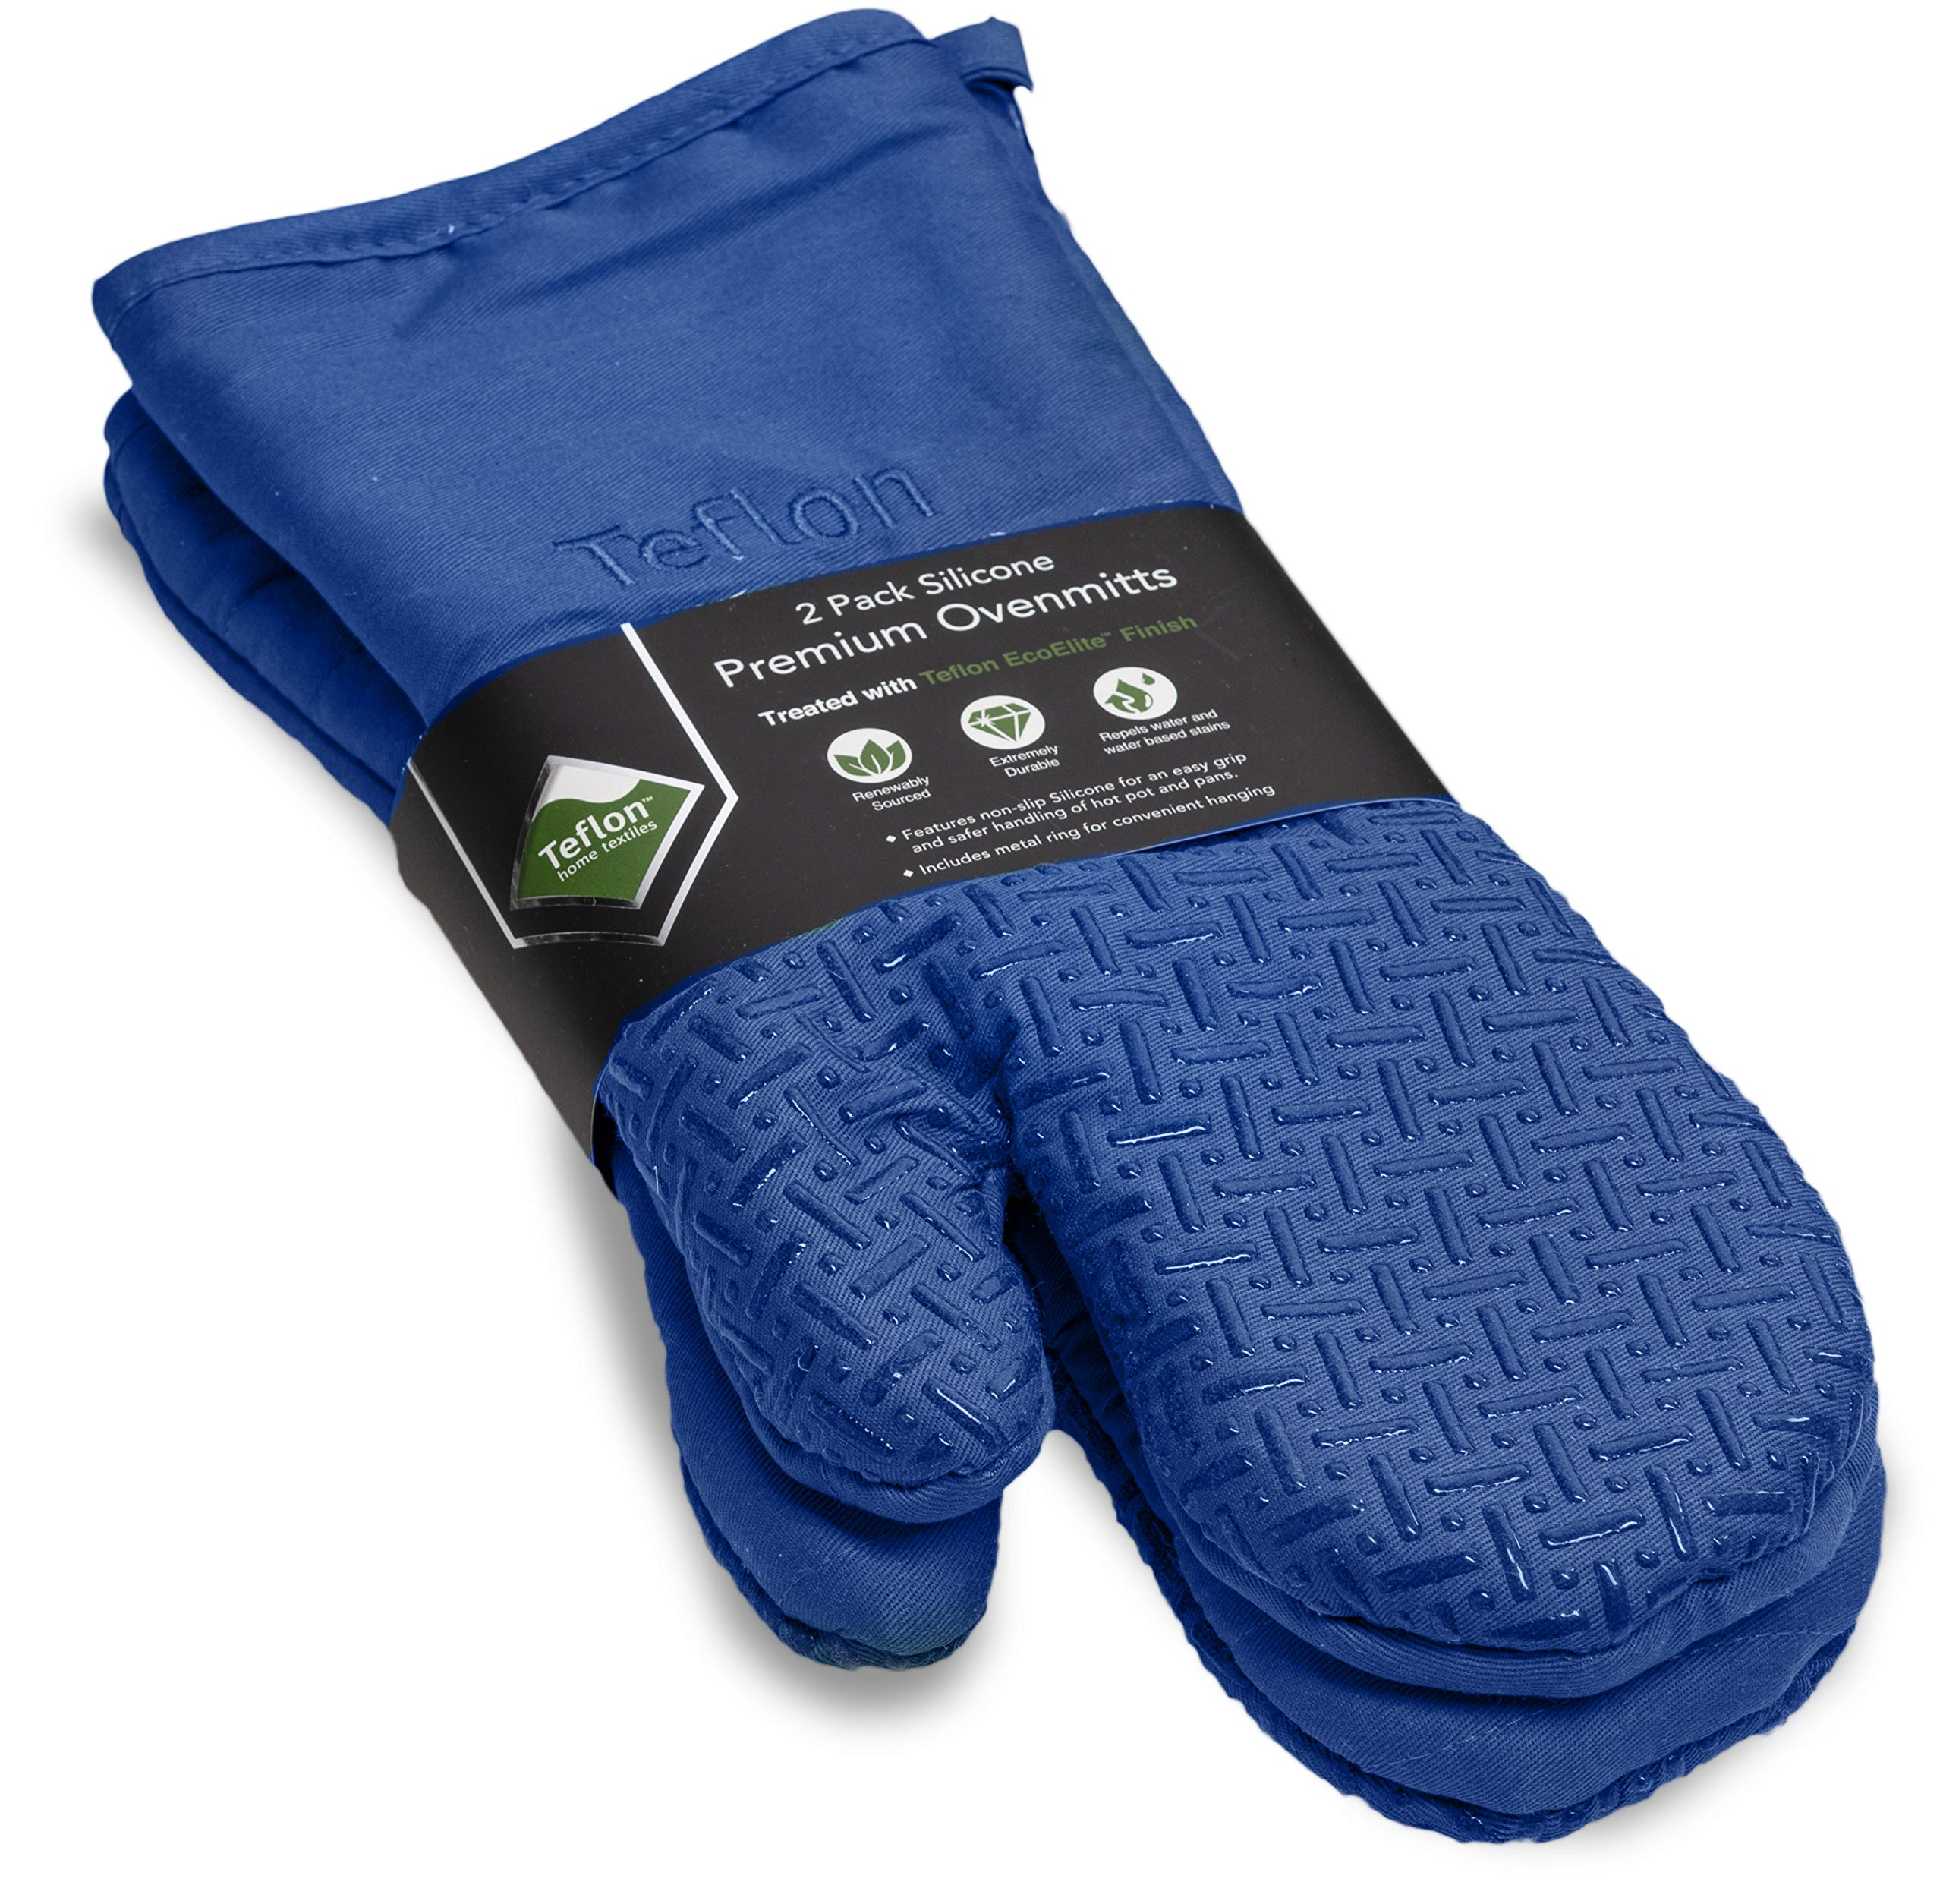 XLNT Blue Premium Non Slip Silicone Oven Mitts, Heat Resistant, with Teflon Eco Elite Finish, Hanging Loop, Great for Home Baker Or Commercial Chef Use by XLNT